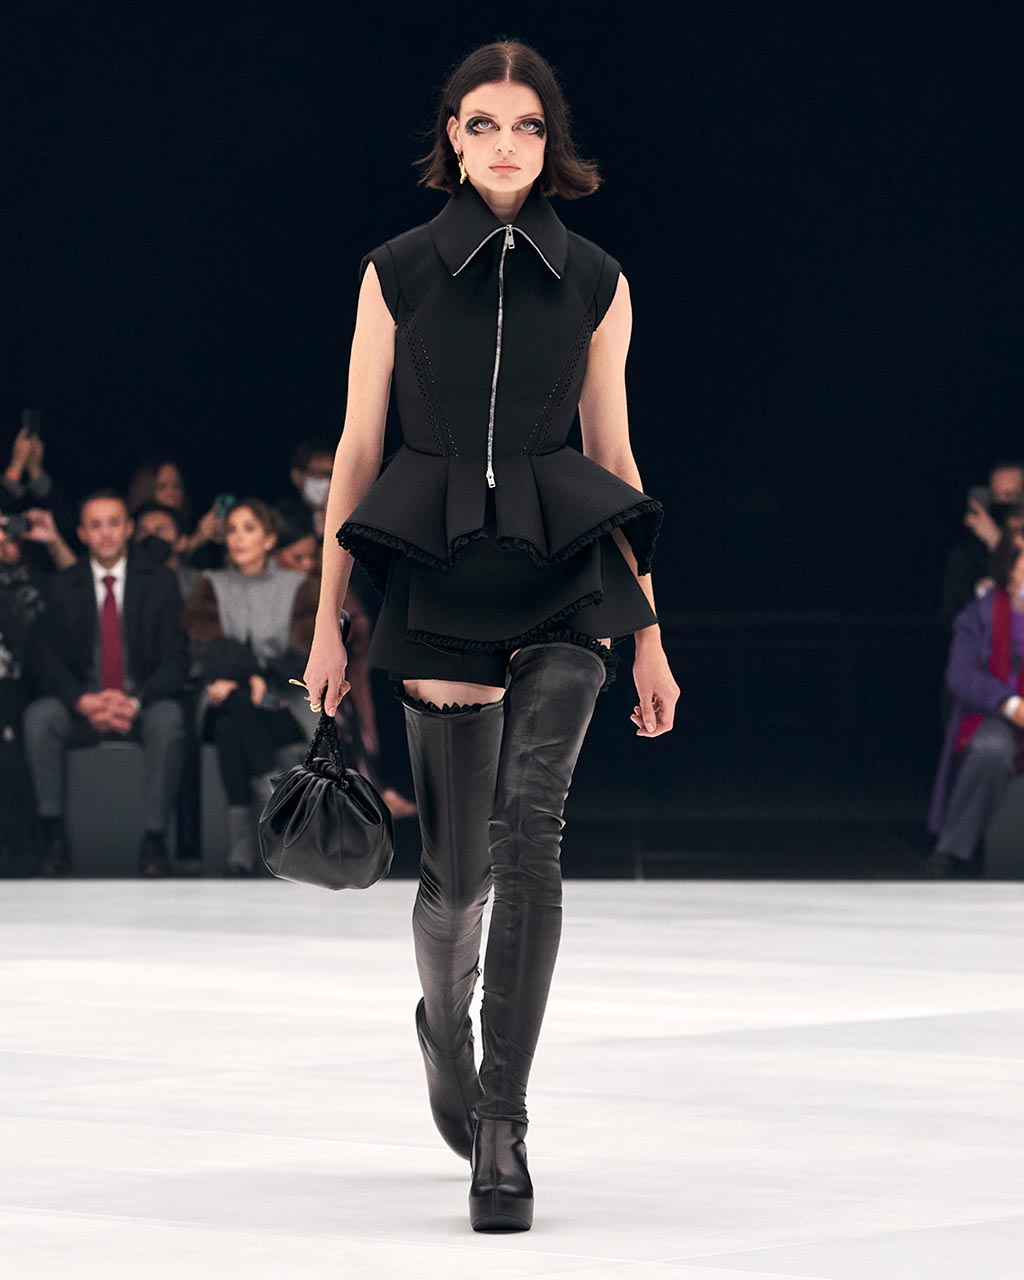 Spring Summer 2022 collection Look 3